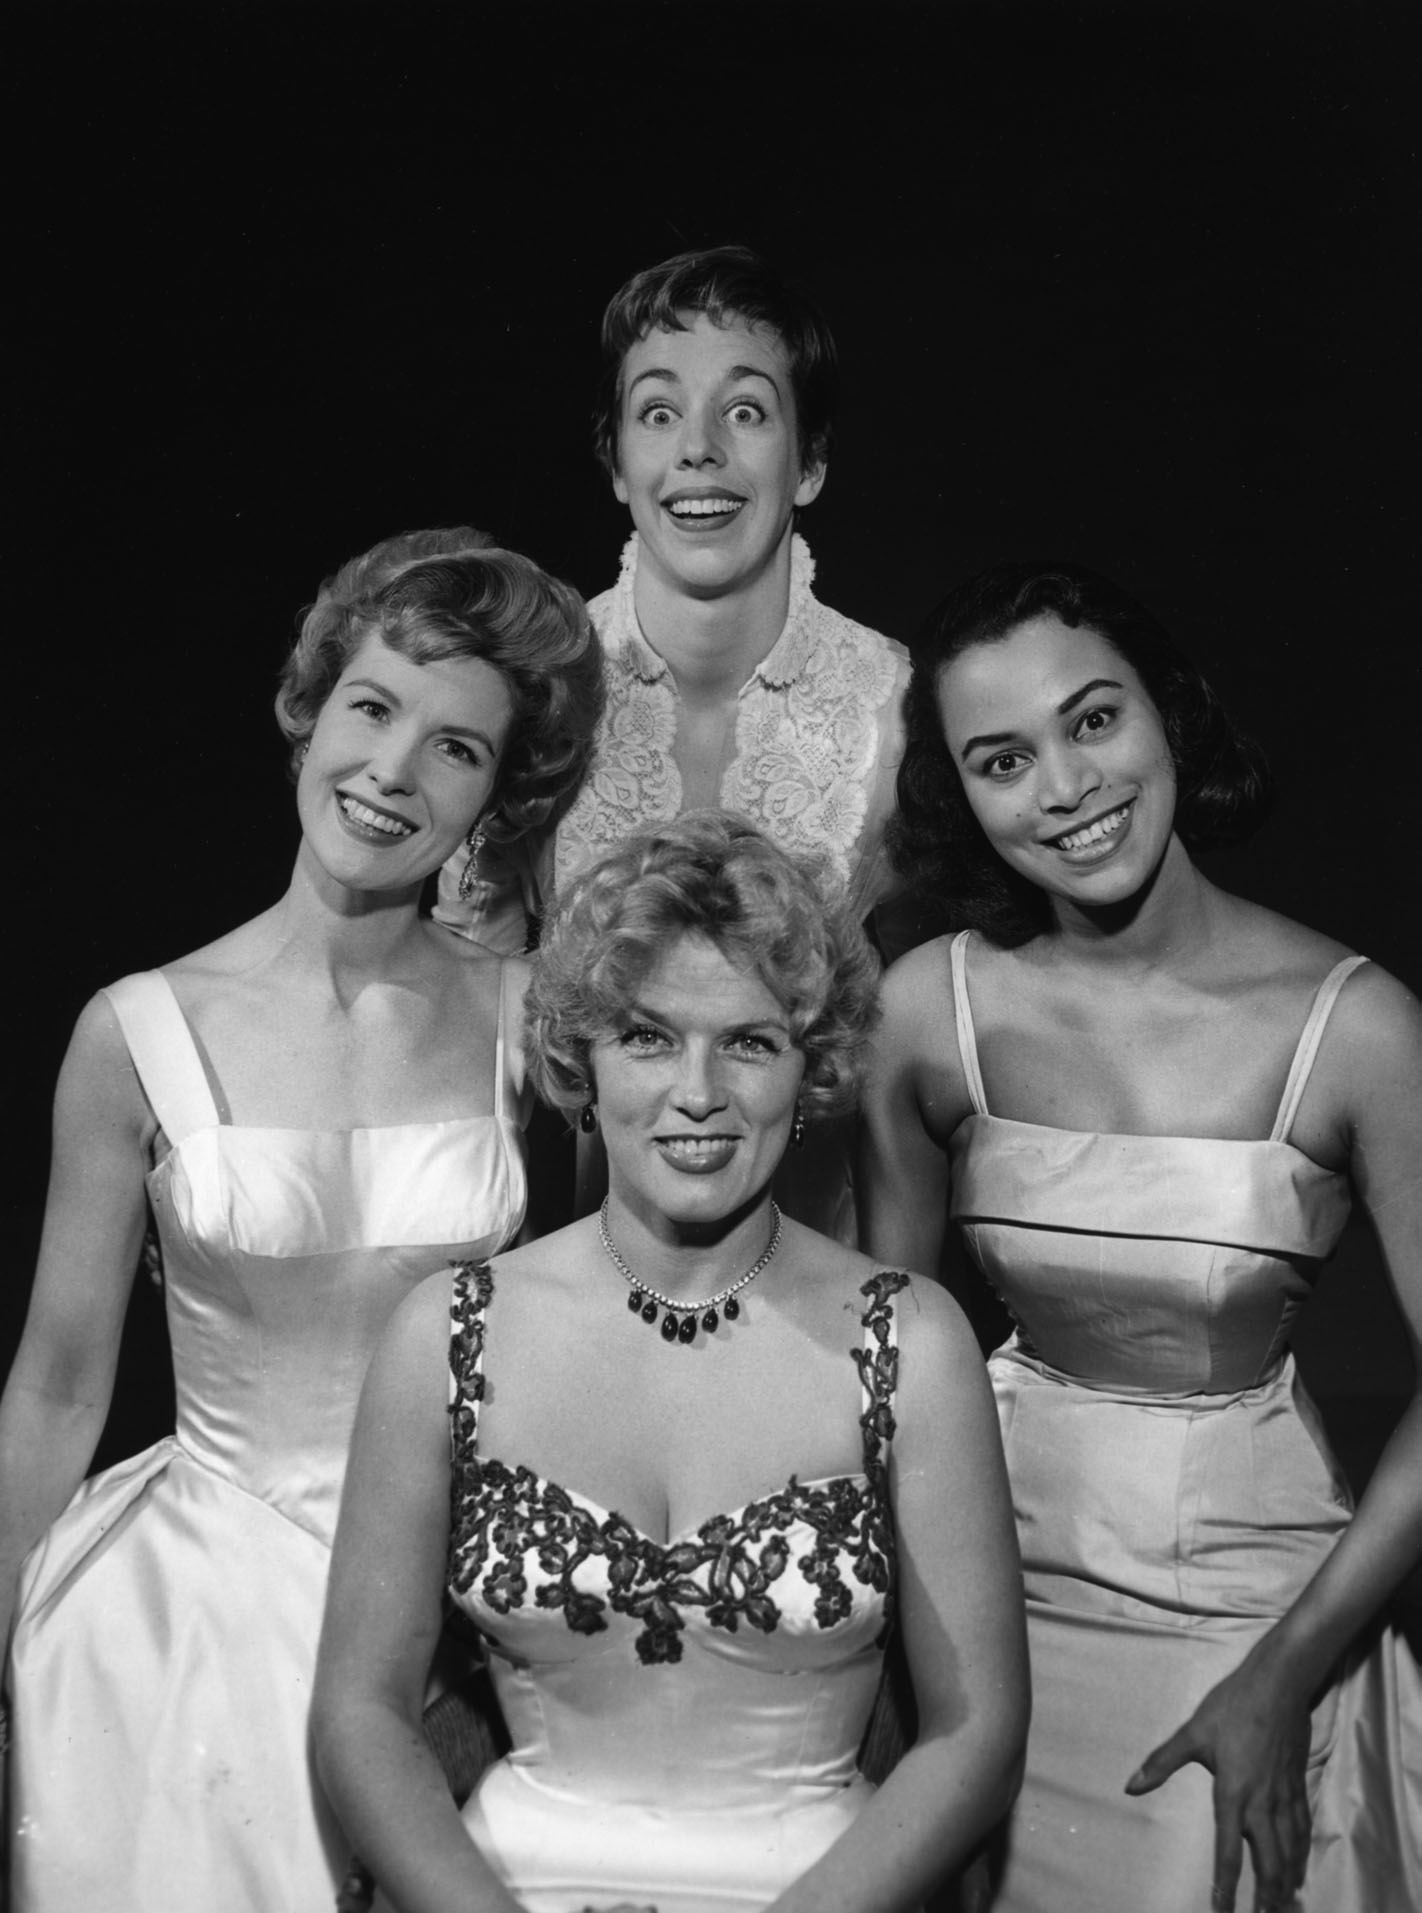 At left: Publicity still of female guests for the broadcast of July 6, 1958. Clockwise from top, comedian Carol Burnett, jazz singer Sallie Blair, French actress Denise Darcel, and GM spokes-model/actress Julia Meade.